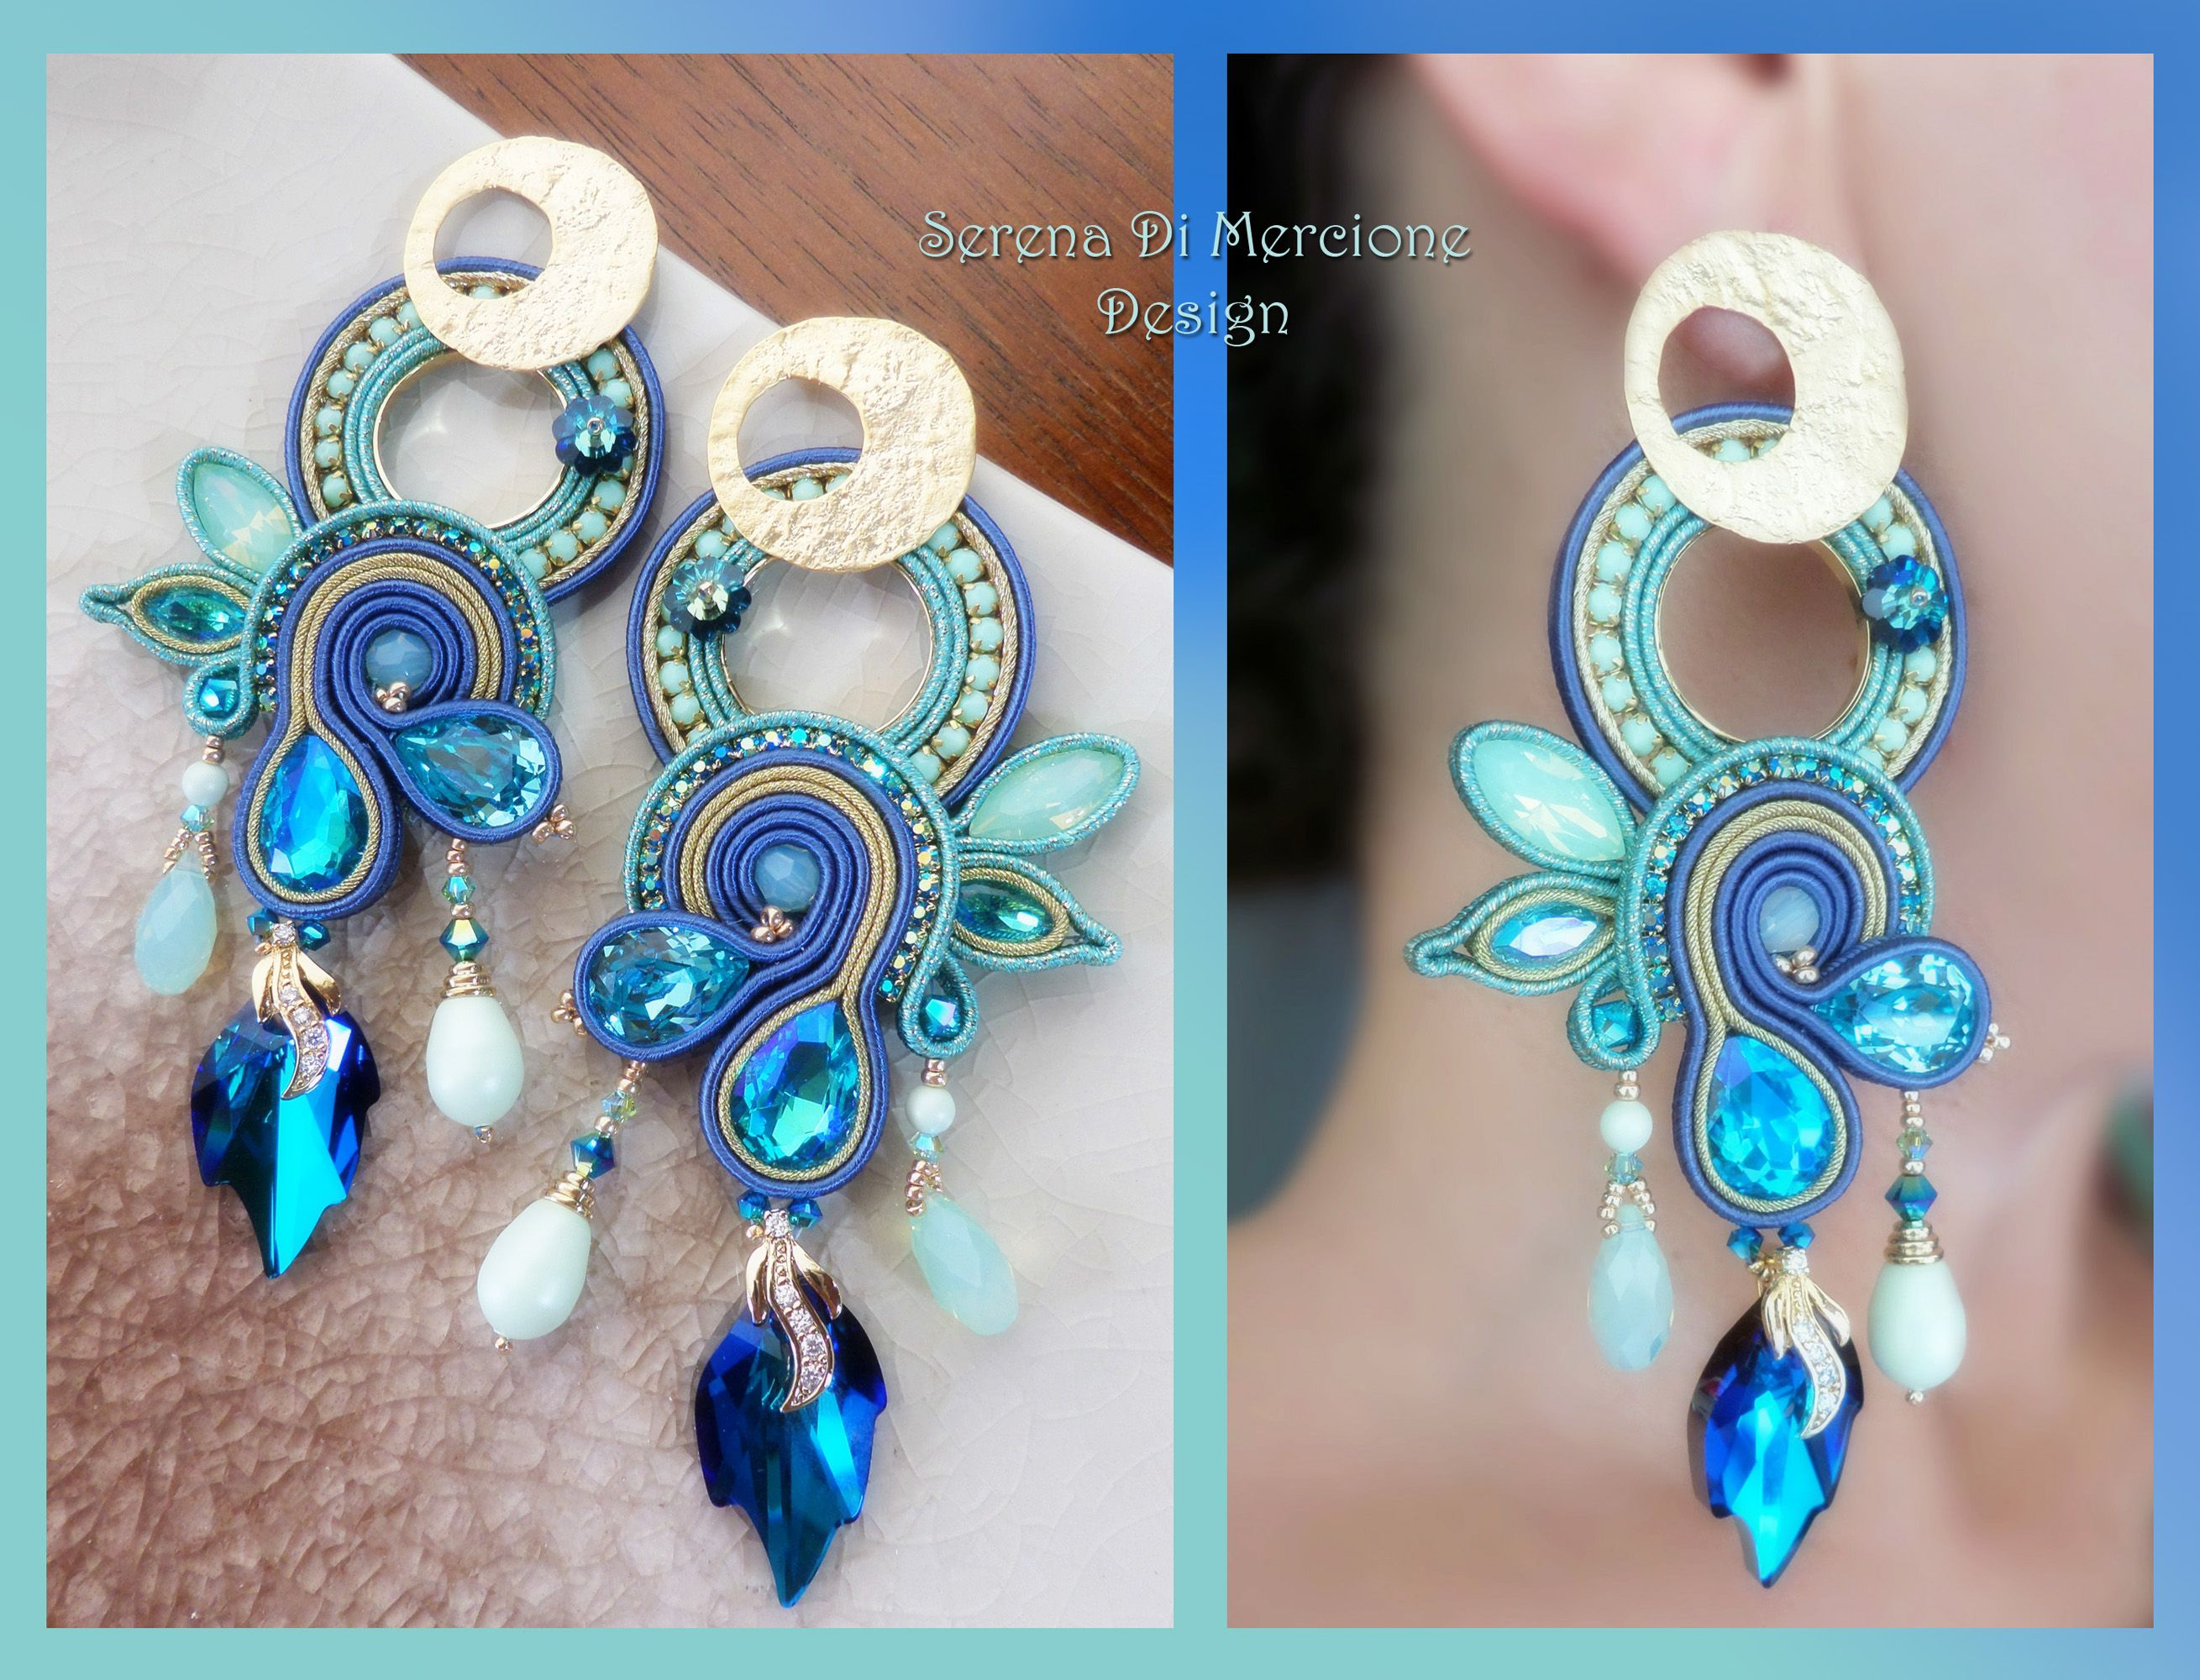 Soutache Earrings, design by Serena Di Mercione